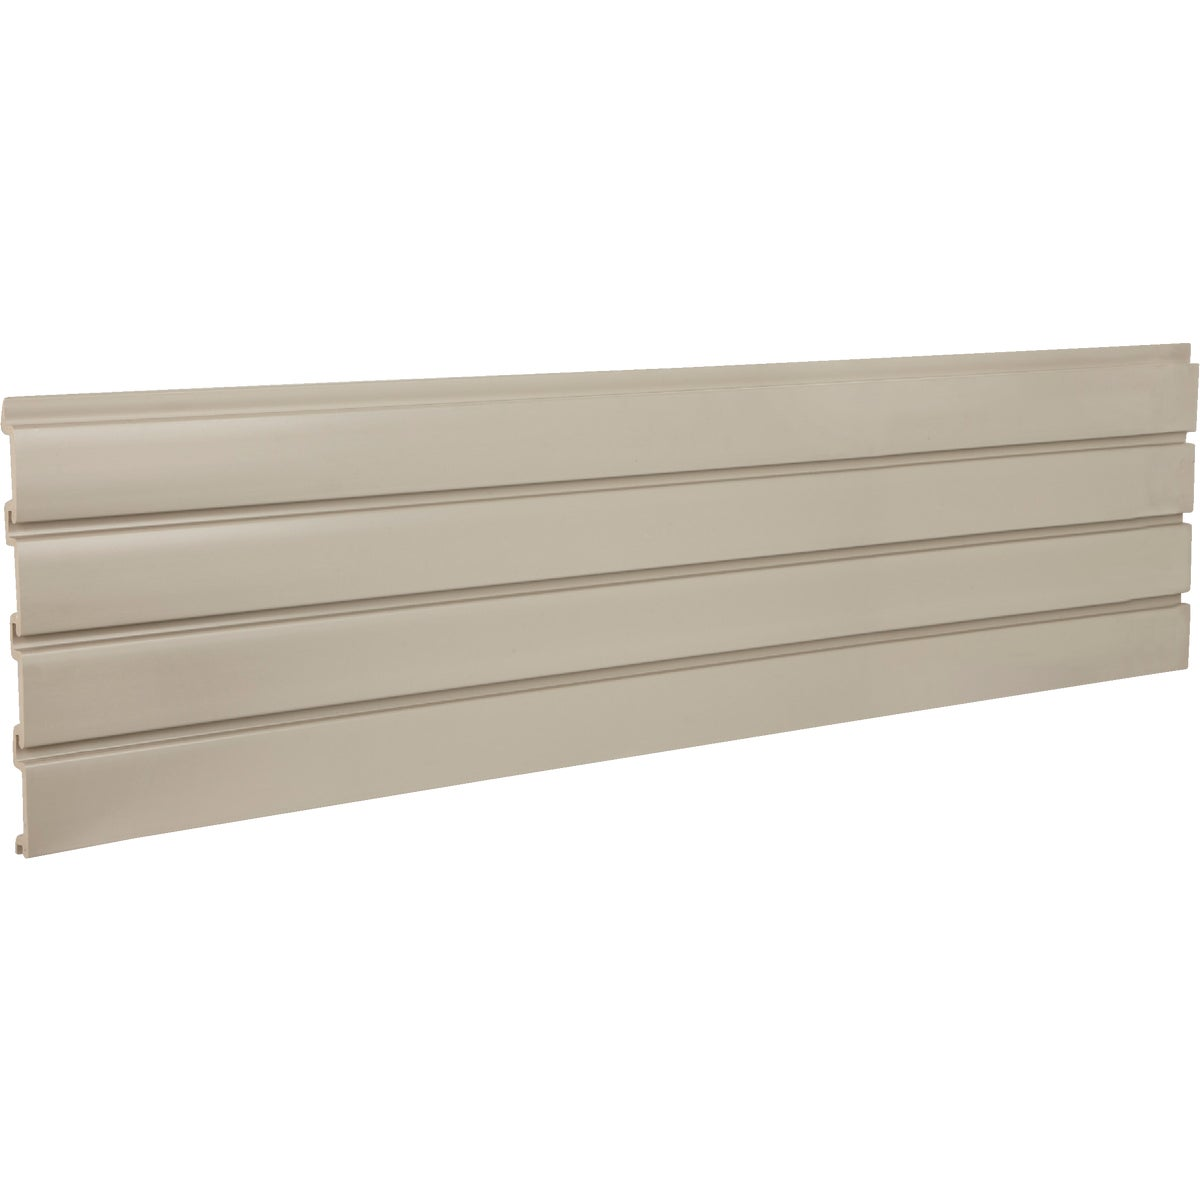 4' TAN SLATWALL - SW04 by Suncast Corporation